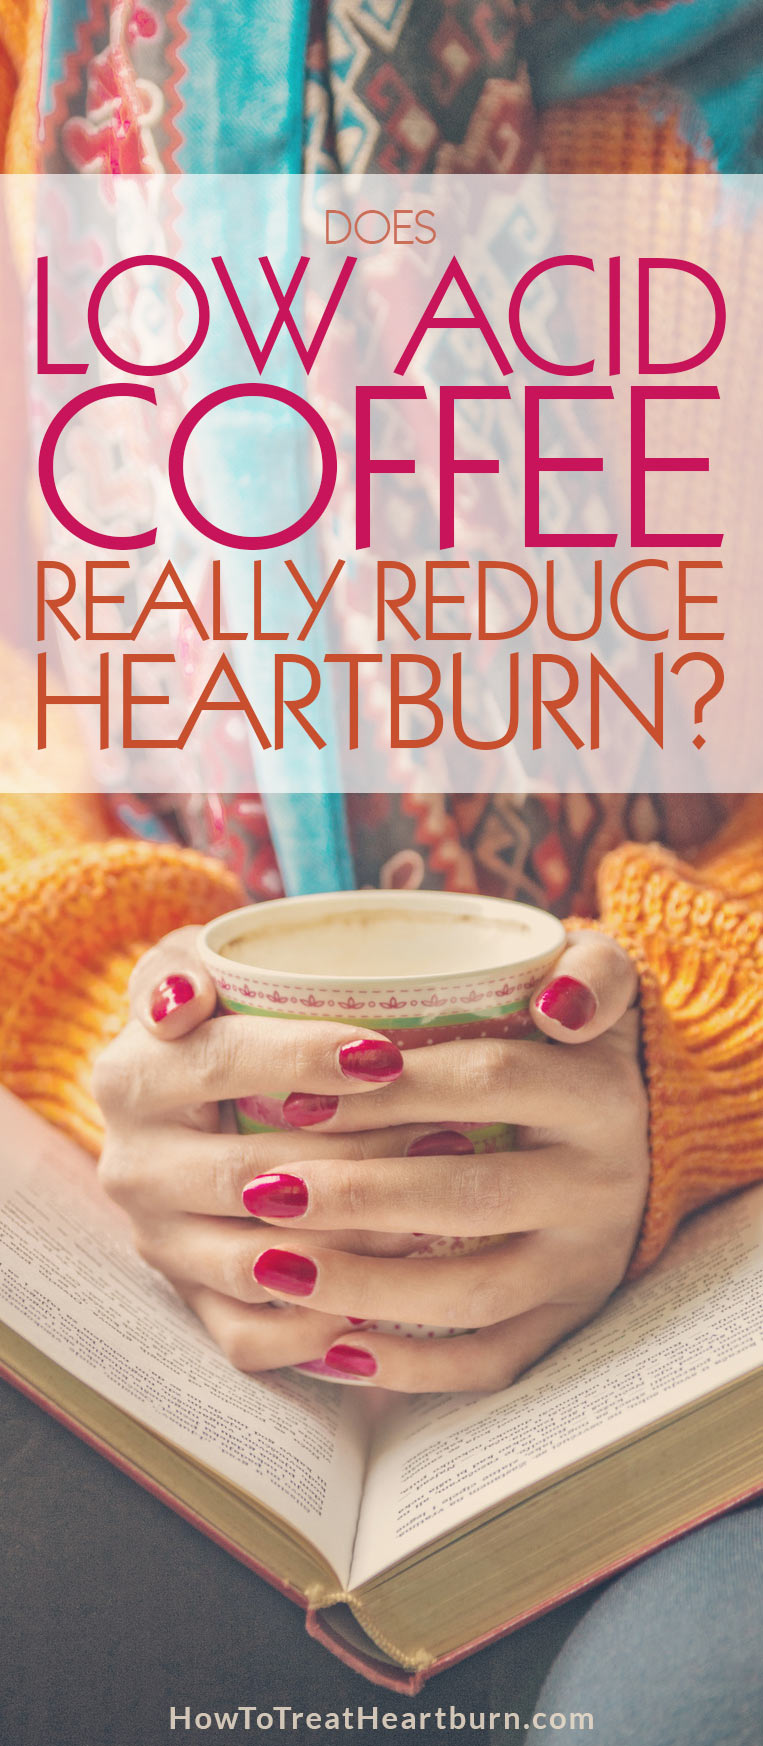 Millions experience heartburn, acid reflux, and other digestive disorders due to acid levels in coffee. Does low acid coffee allow these people to continue enjoying coffee without experiencing heartburn?